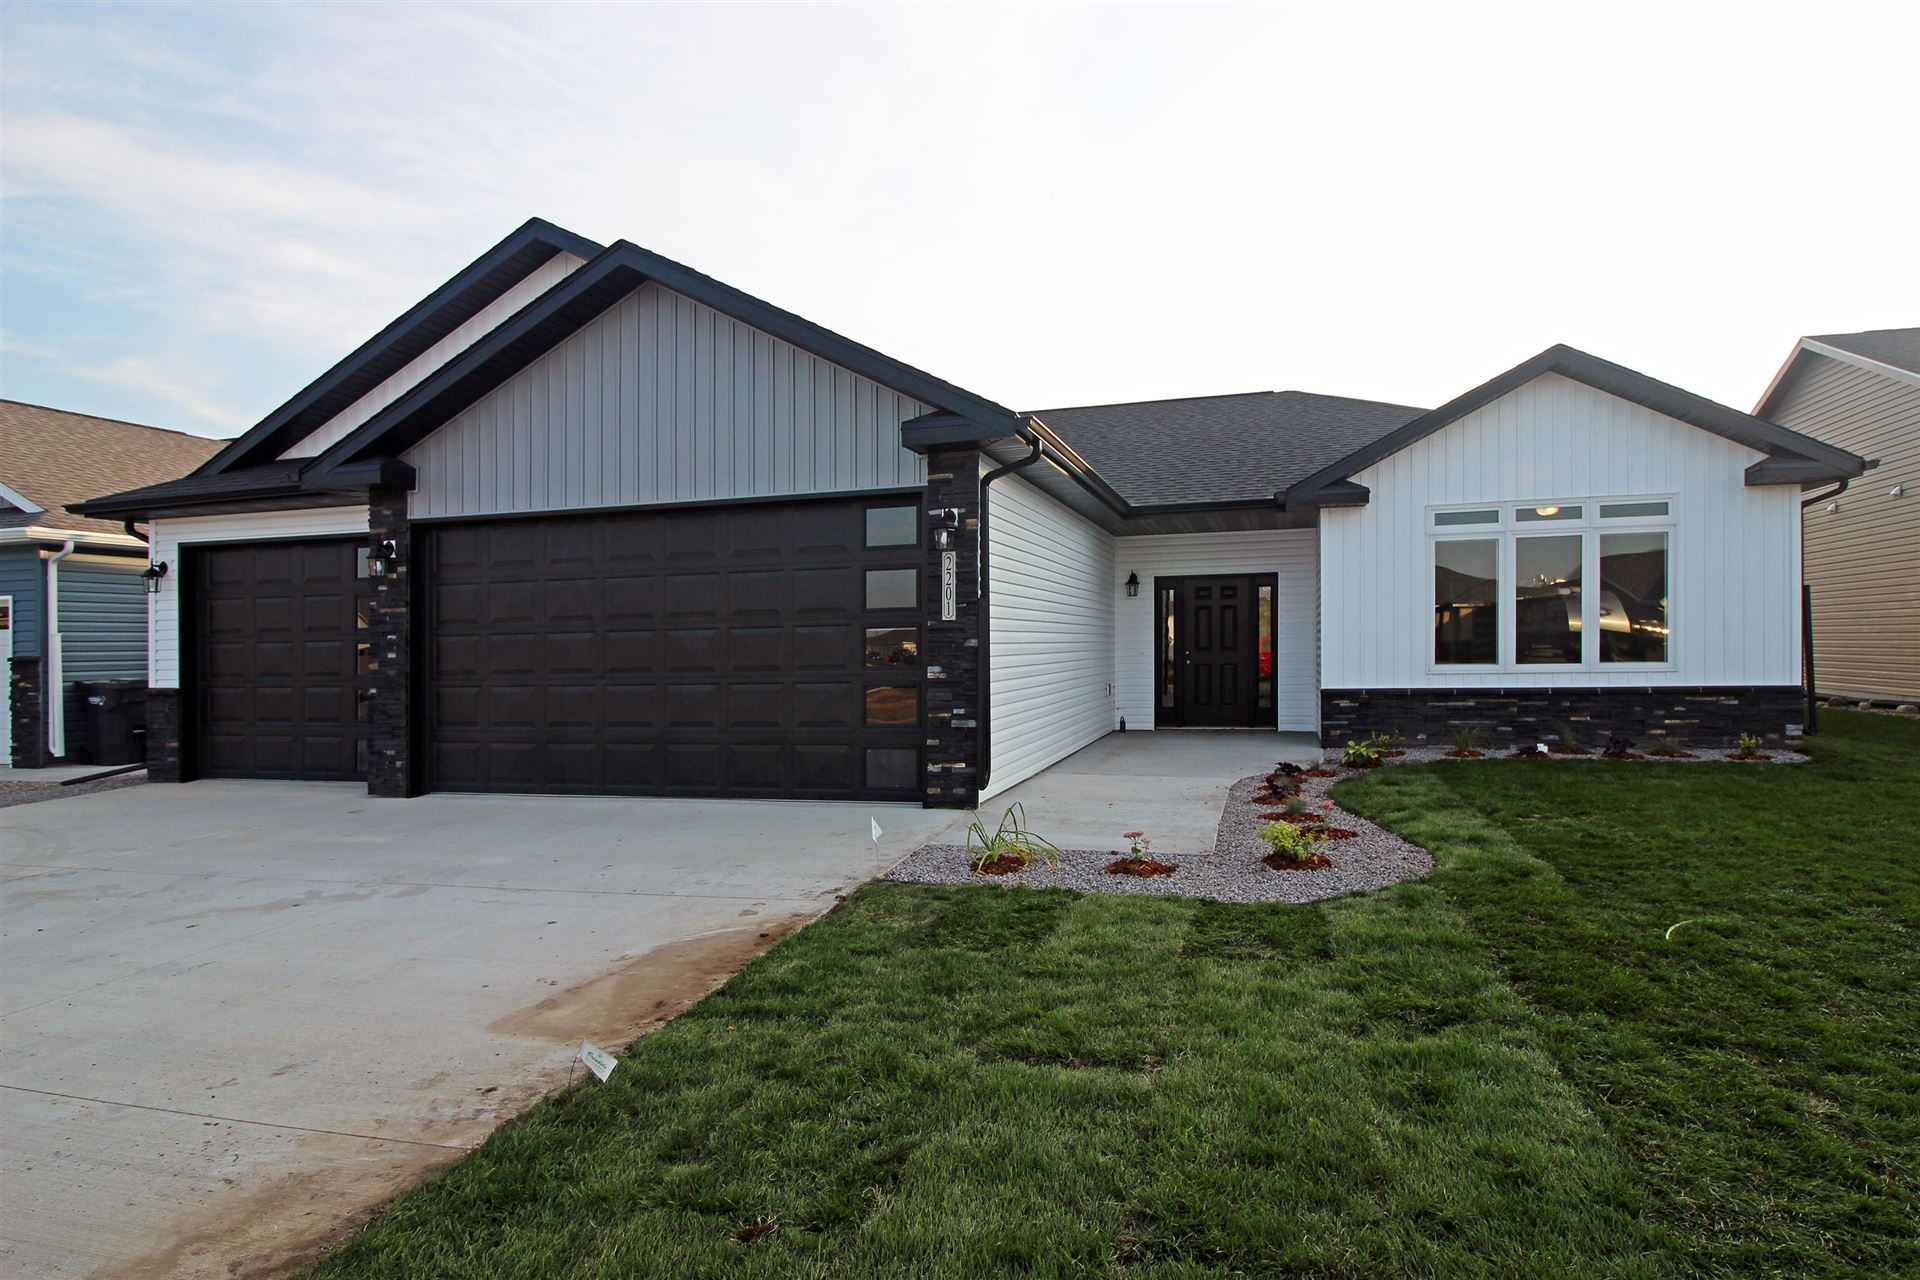 2201 34th Avenue SE, Mandan, ND 58554 - #: 407868